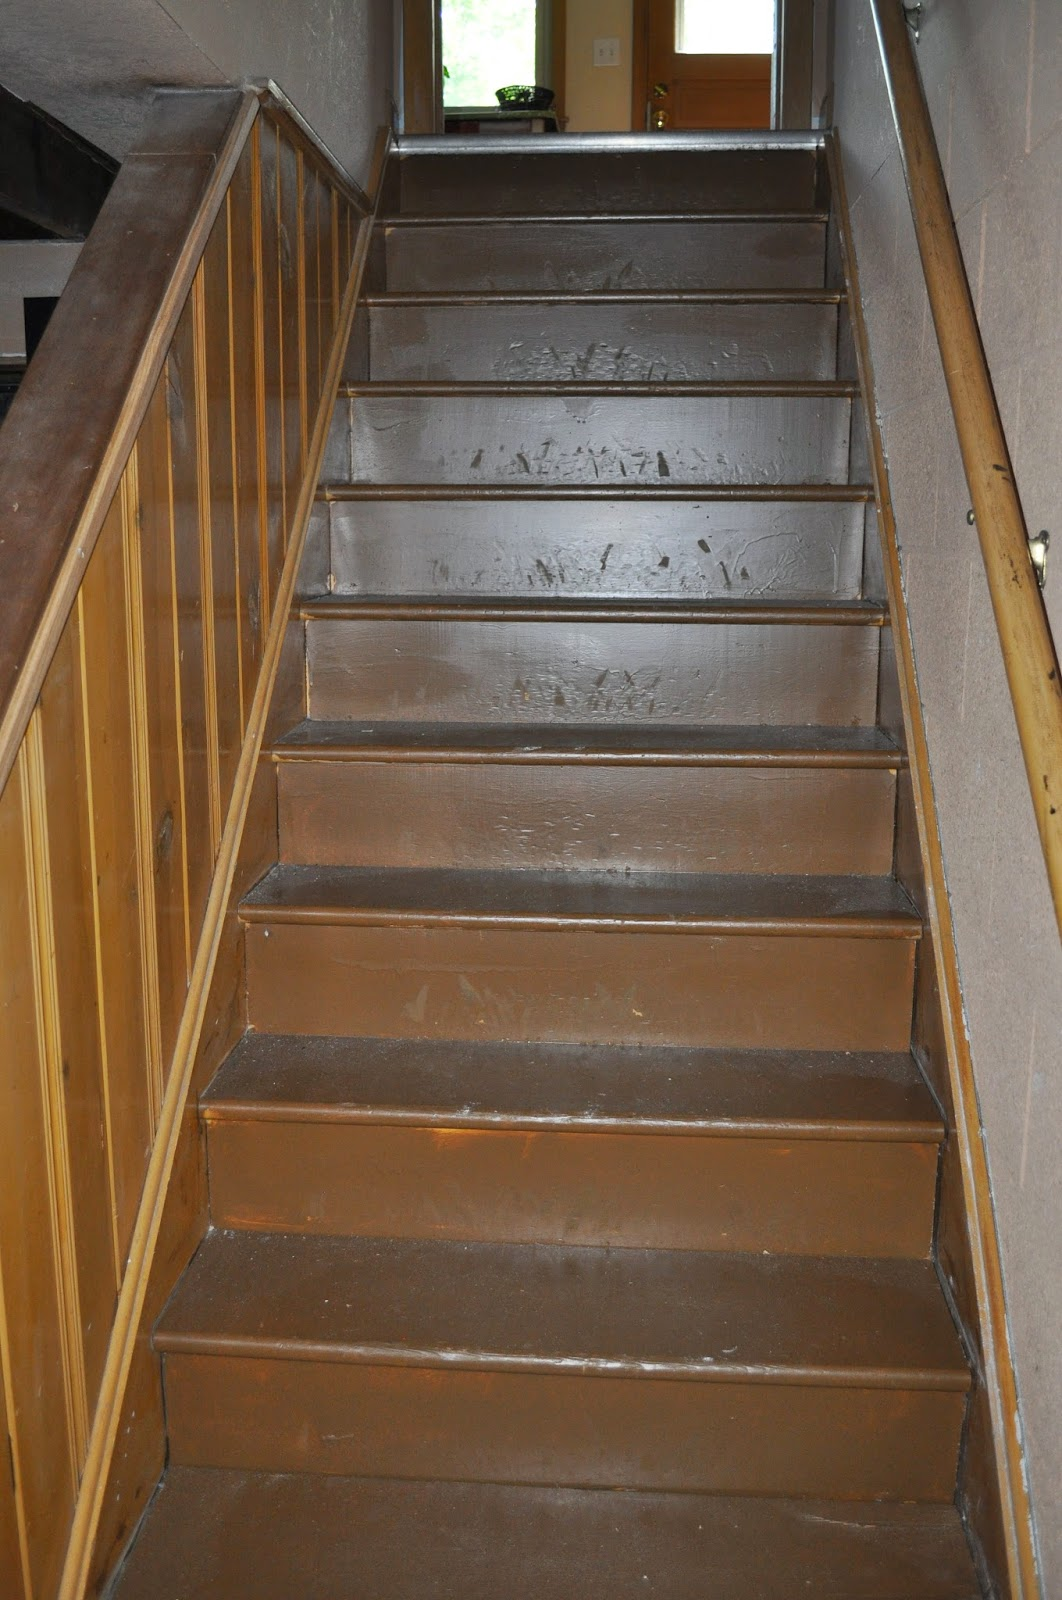 Lighting Basement Washroom Stairs: Carri Us Home: Installing A Runner